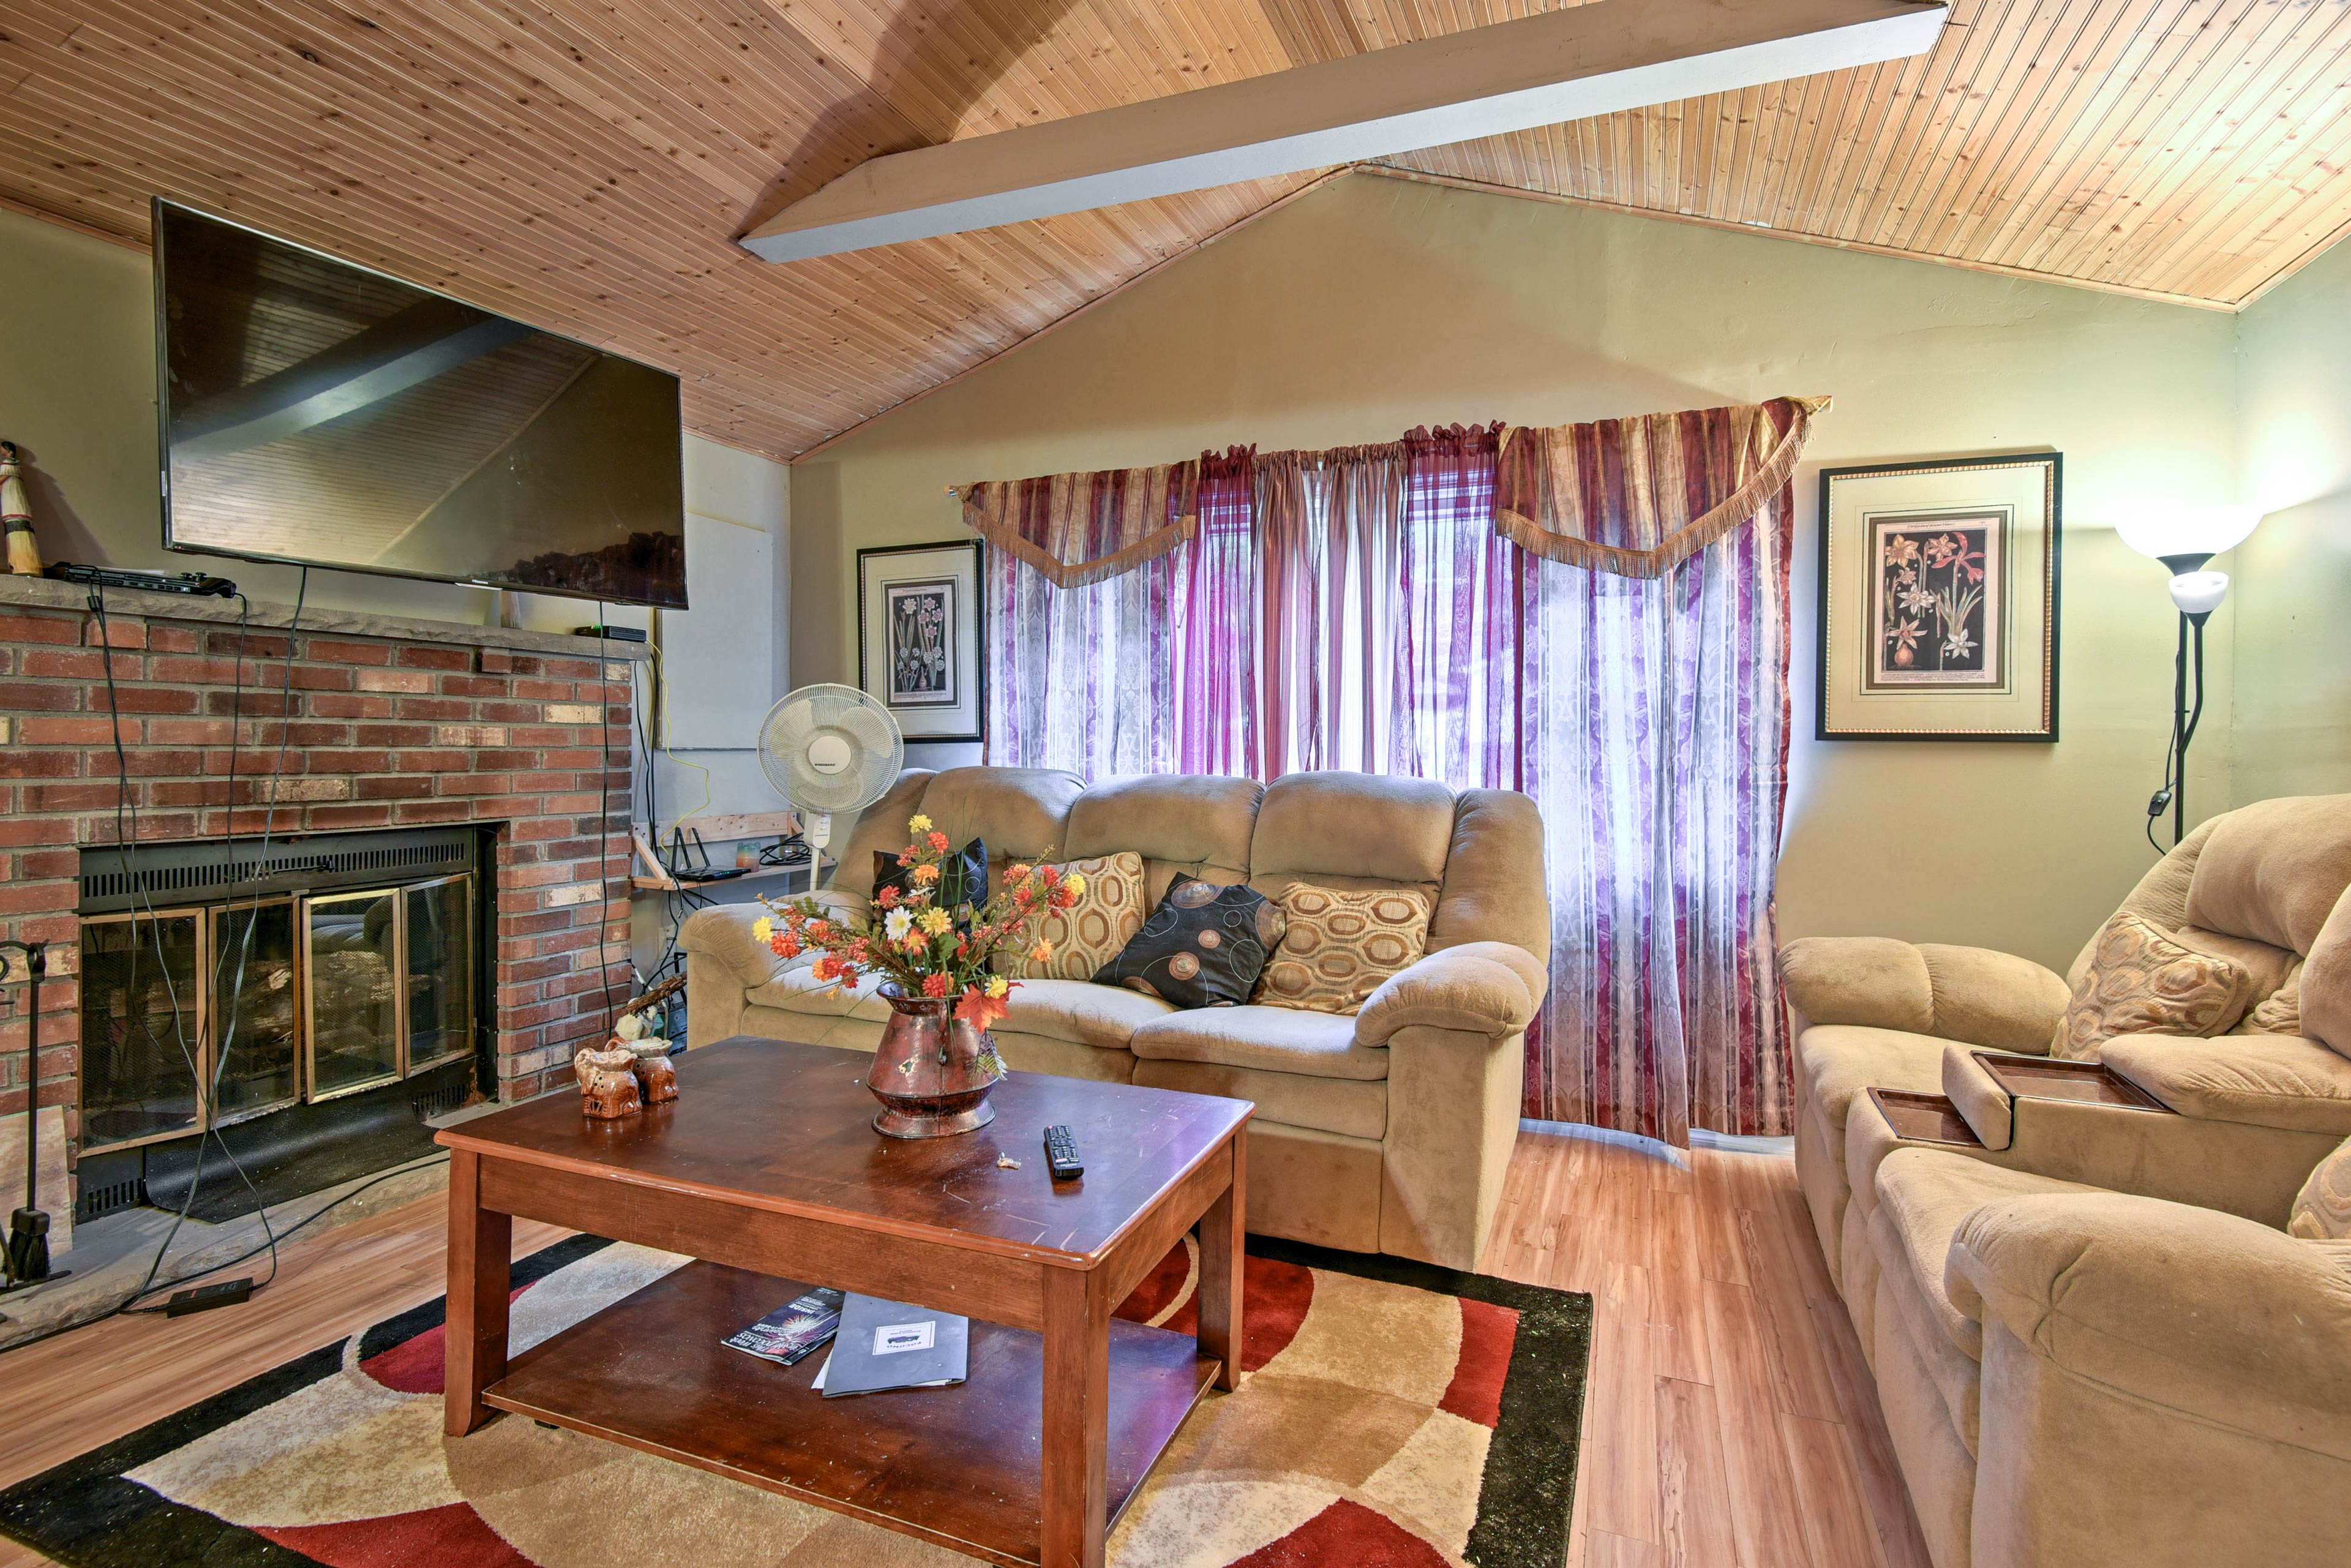 Inside, you'll find all of the comforts of home, including a flat-screen TV.